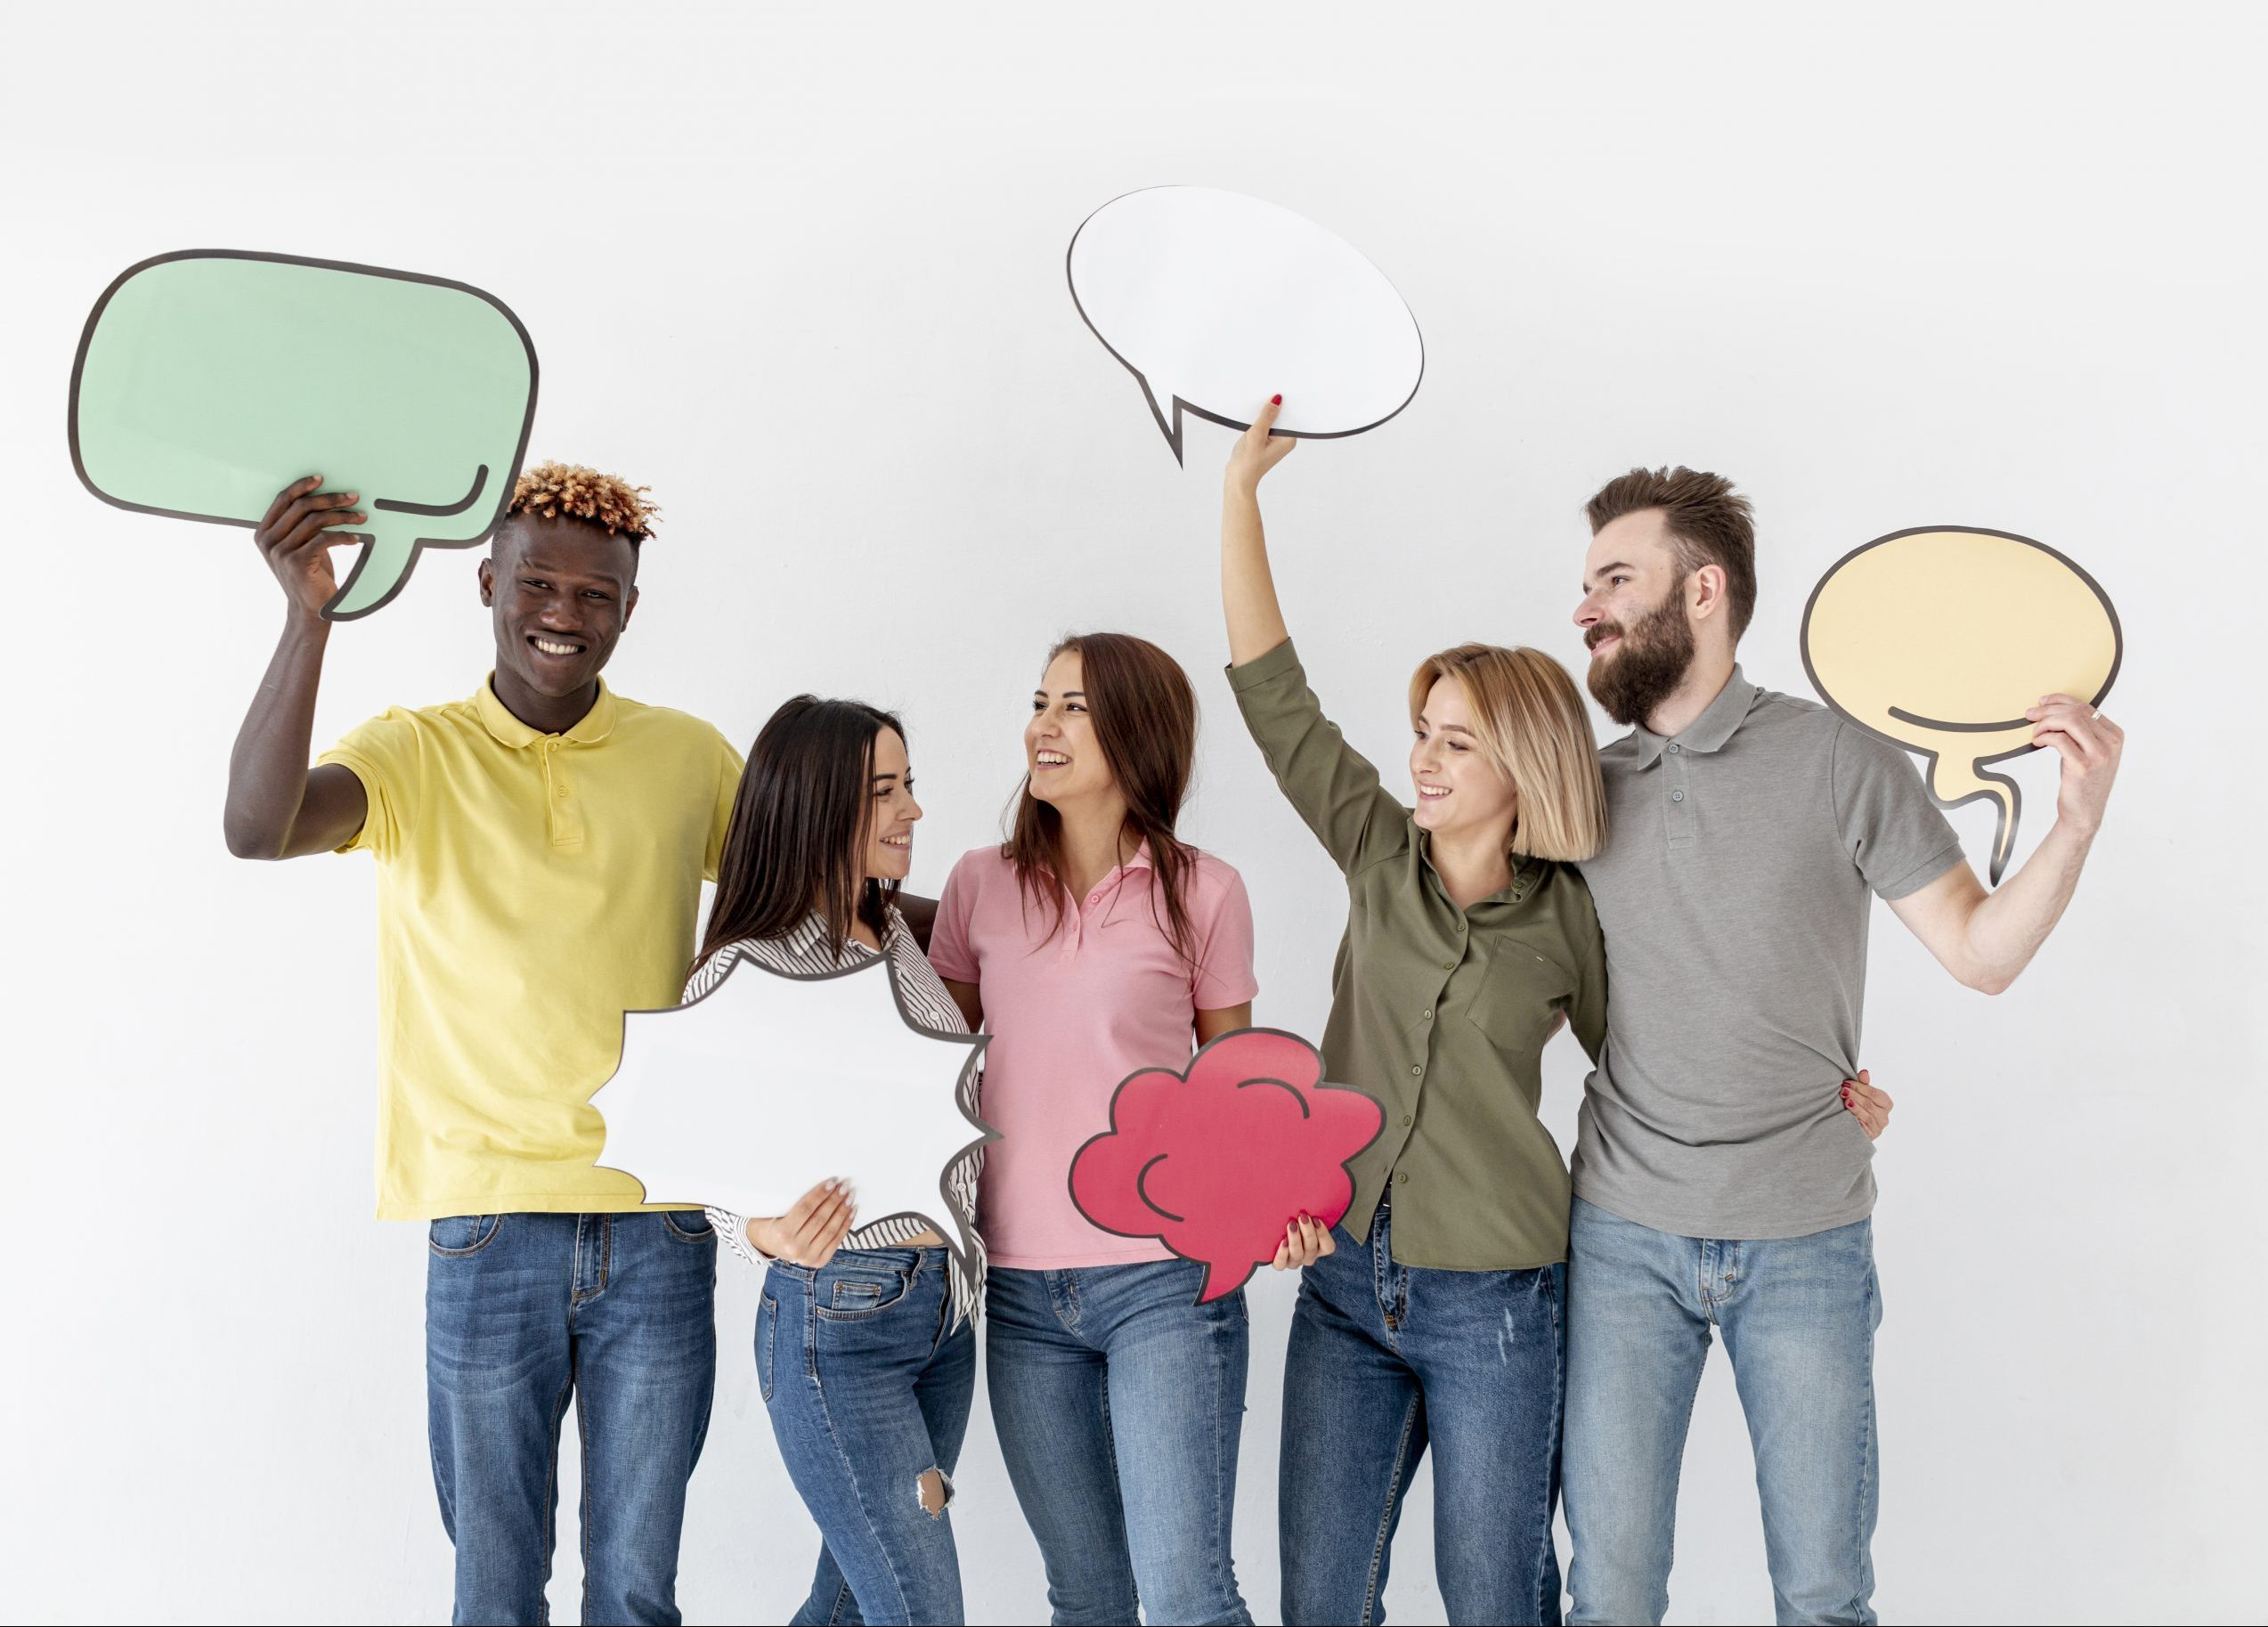 copy-space-young-friends-holding-chat-bubble